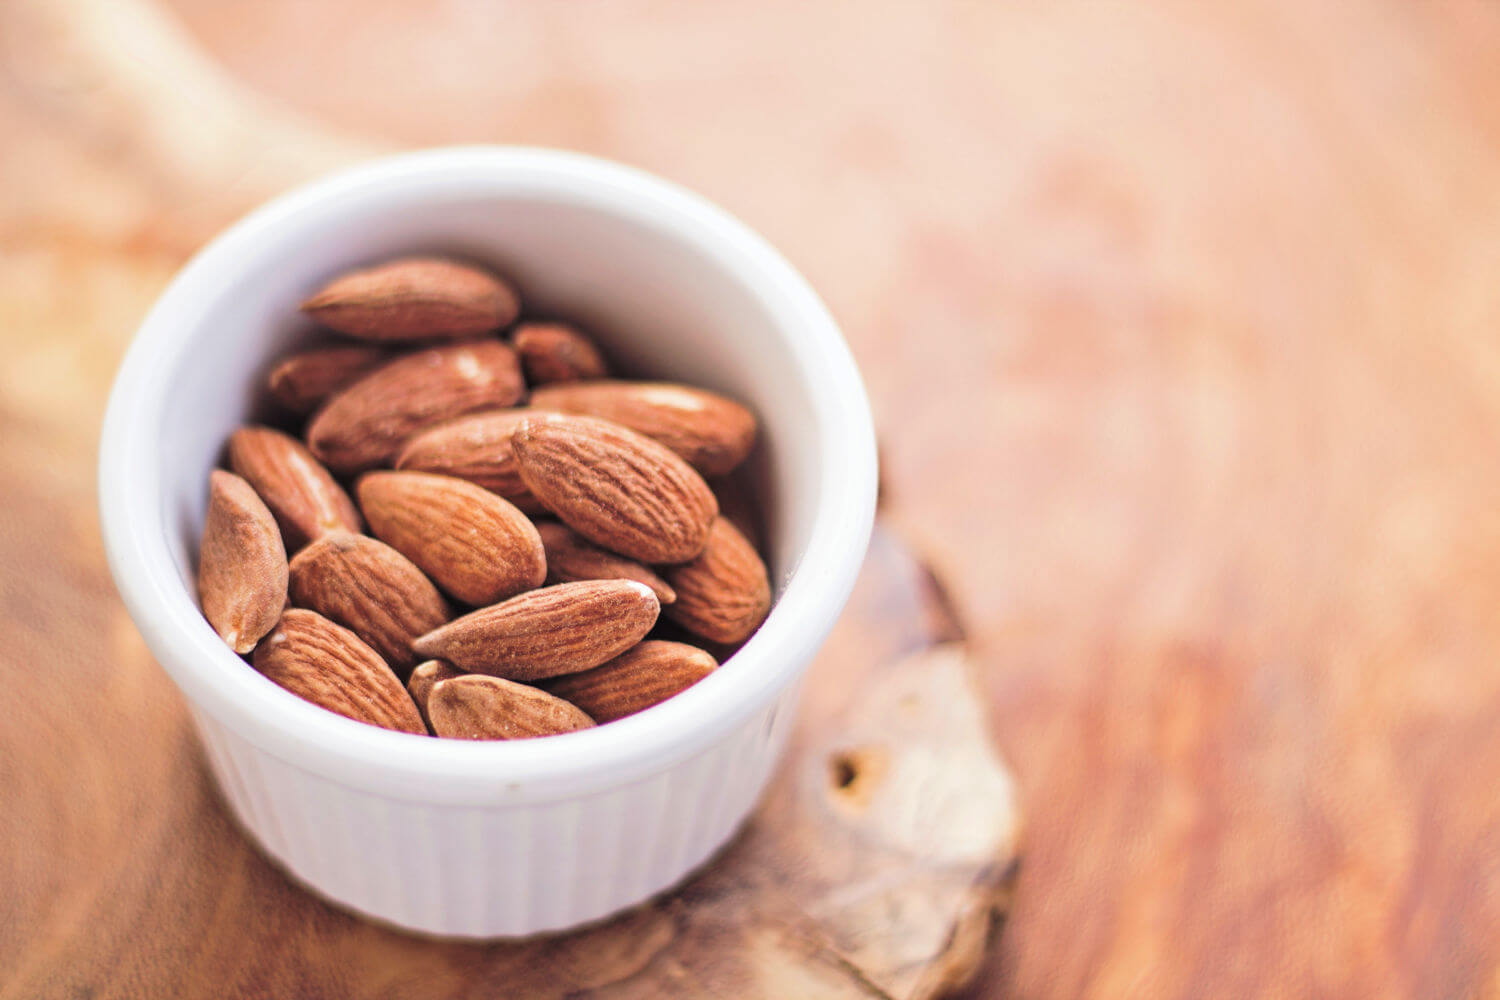 Almonds to make almond flour